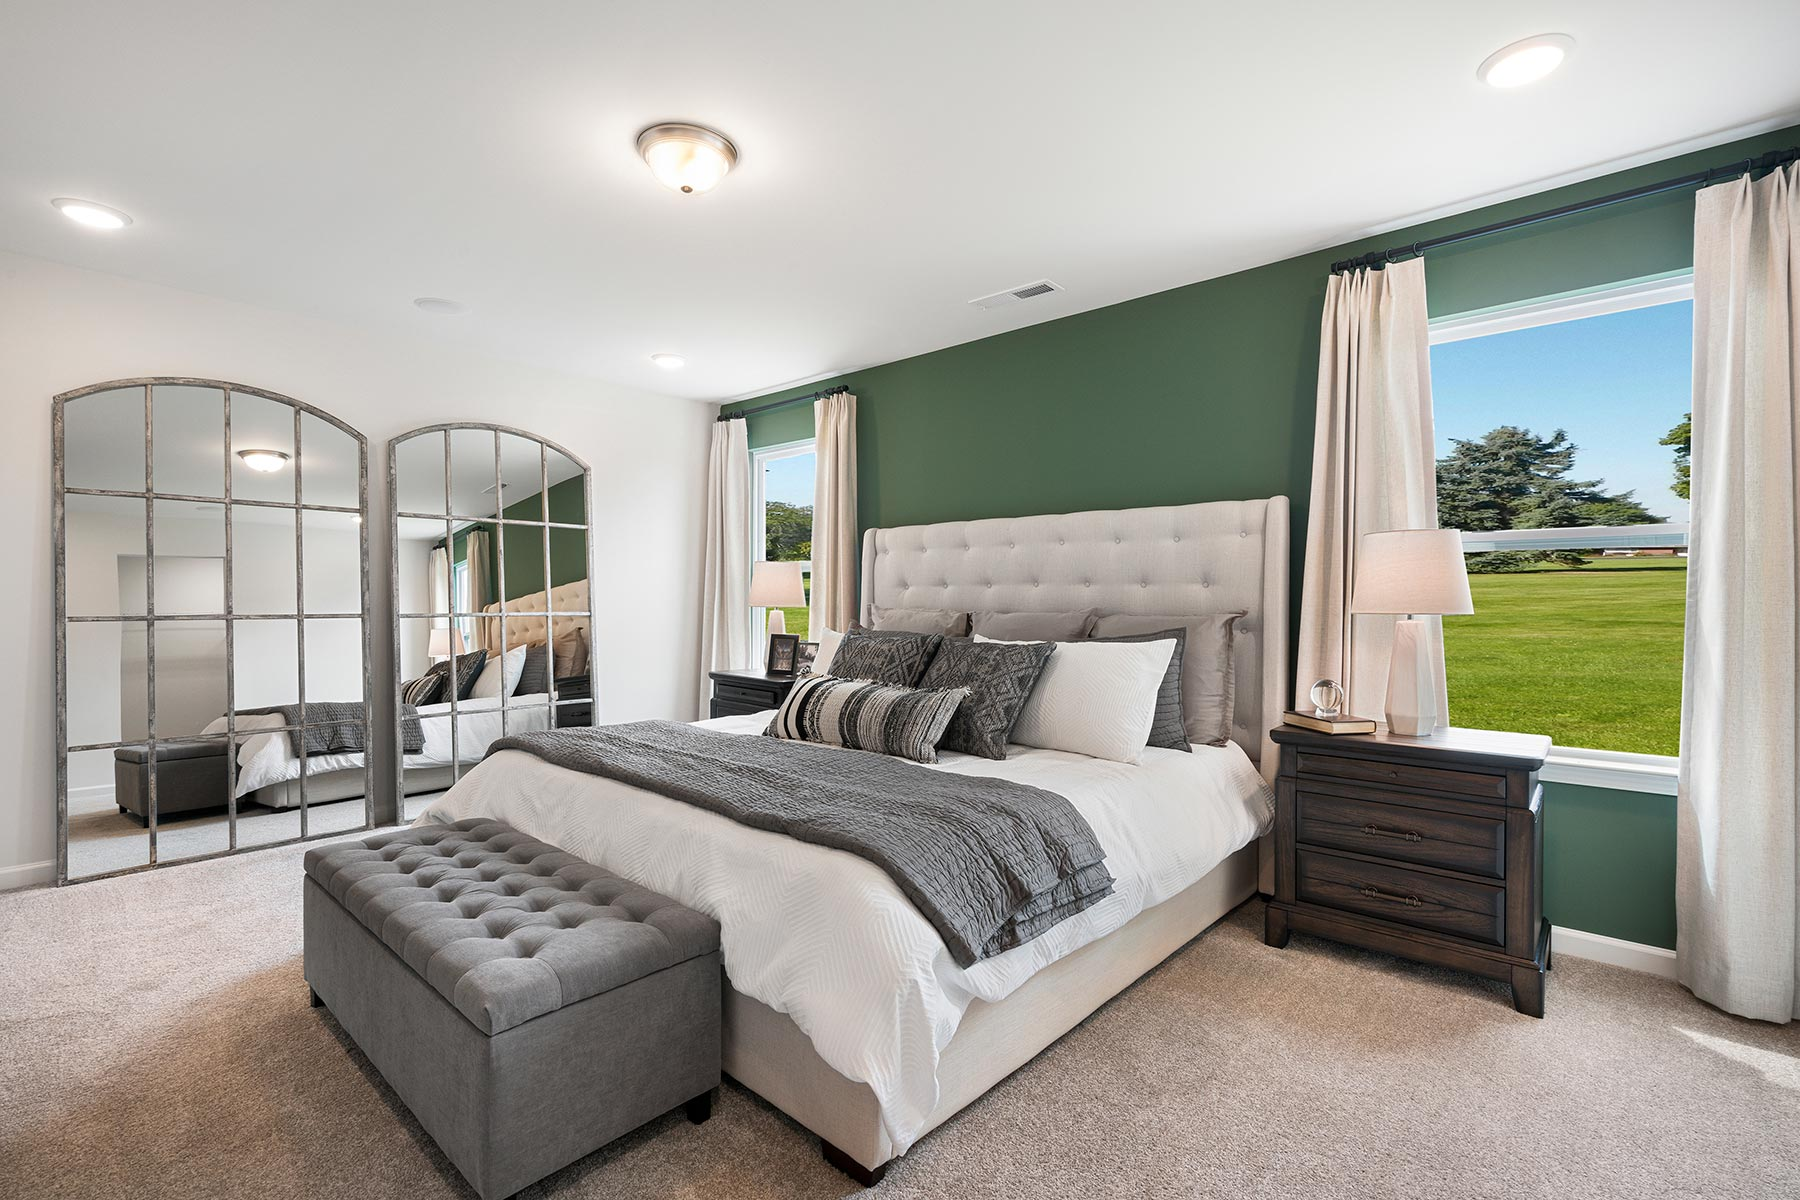 Gaines Plan Bedroom at Oak Park in Garner North Carolina by Mattamy Homes